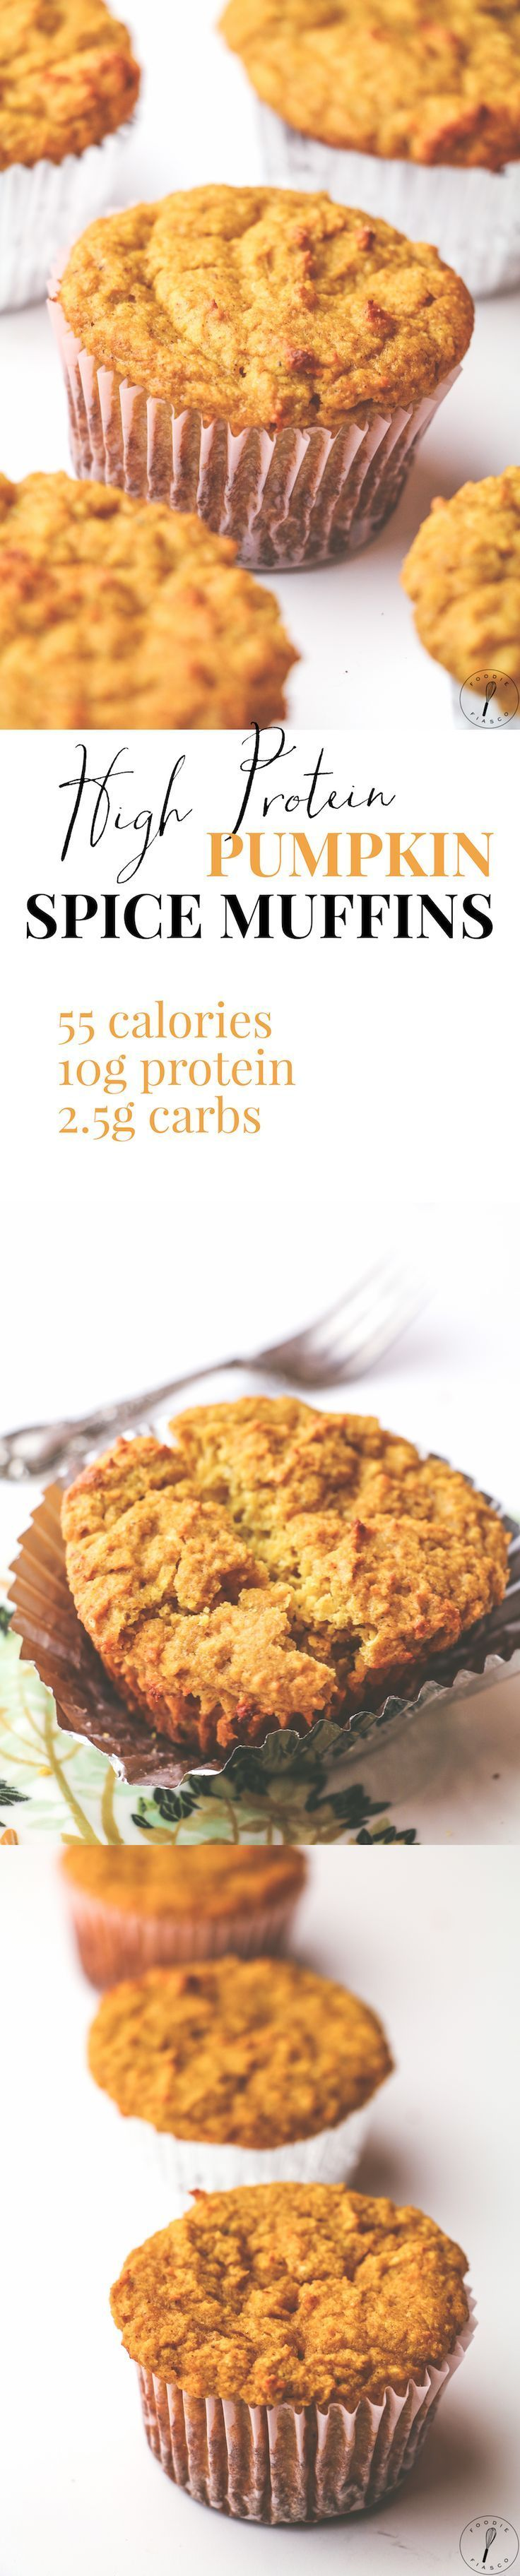 I LOVE THESE MUFFINS SO MUCH. Each giant muffin has only 55 calories but packs 10g protein (!!) and only 3g carbs! Perfectly spiced with an amazing texture. Must make!!